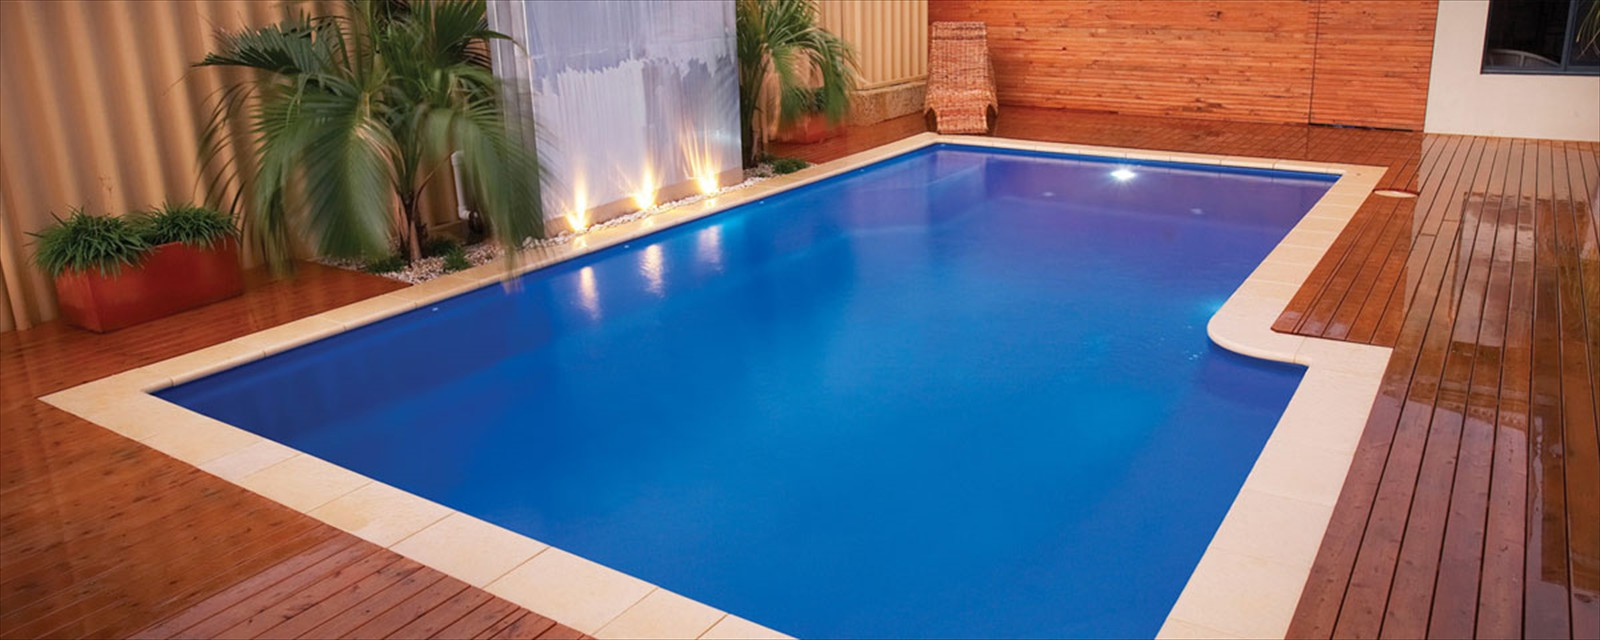 Mariners pools concrete pools fibreglass pools Fibreglass pools vs concrete pools